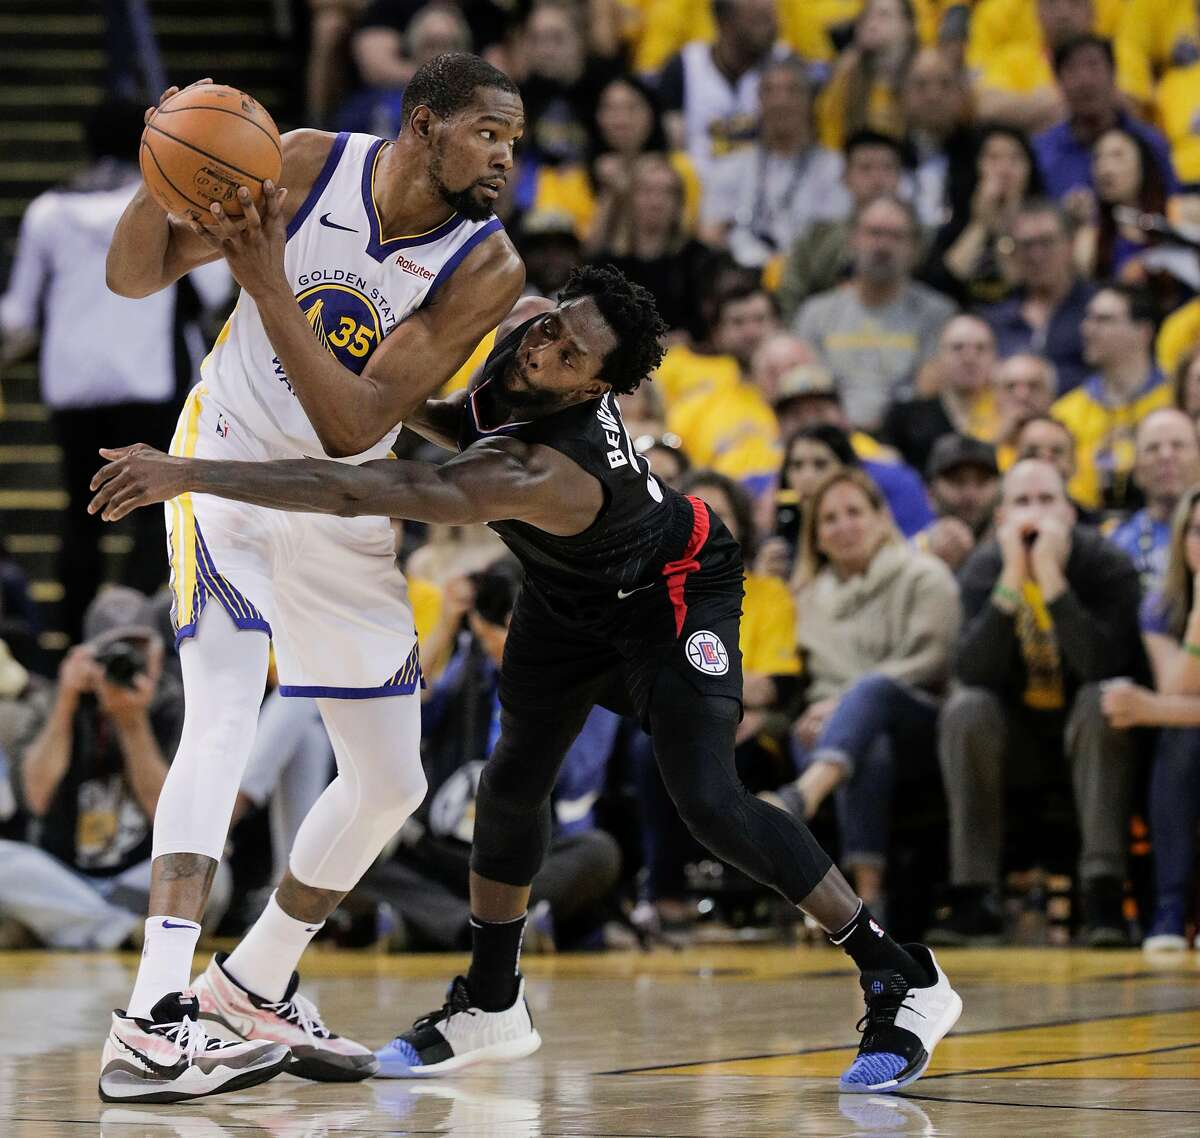 Los Angeles Clippers Patrick Beverley tries to defend against Golden State Warriors Kevin Durant in the third quarter during game 1 of the Western Conference Playoffs between the Golden State Warriors and the Los Angeles Clippers at Oracle Arena on Saturday, April 13, 2019 in Oakland, Calif.